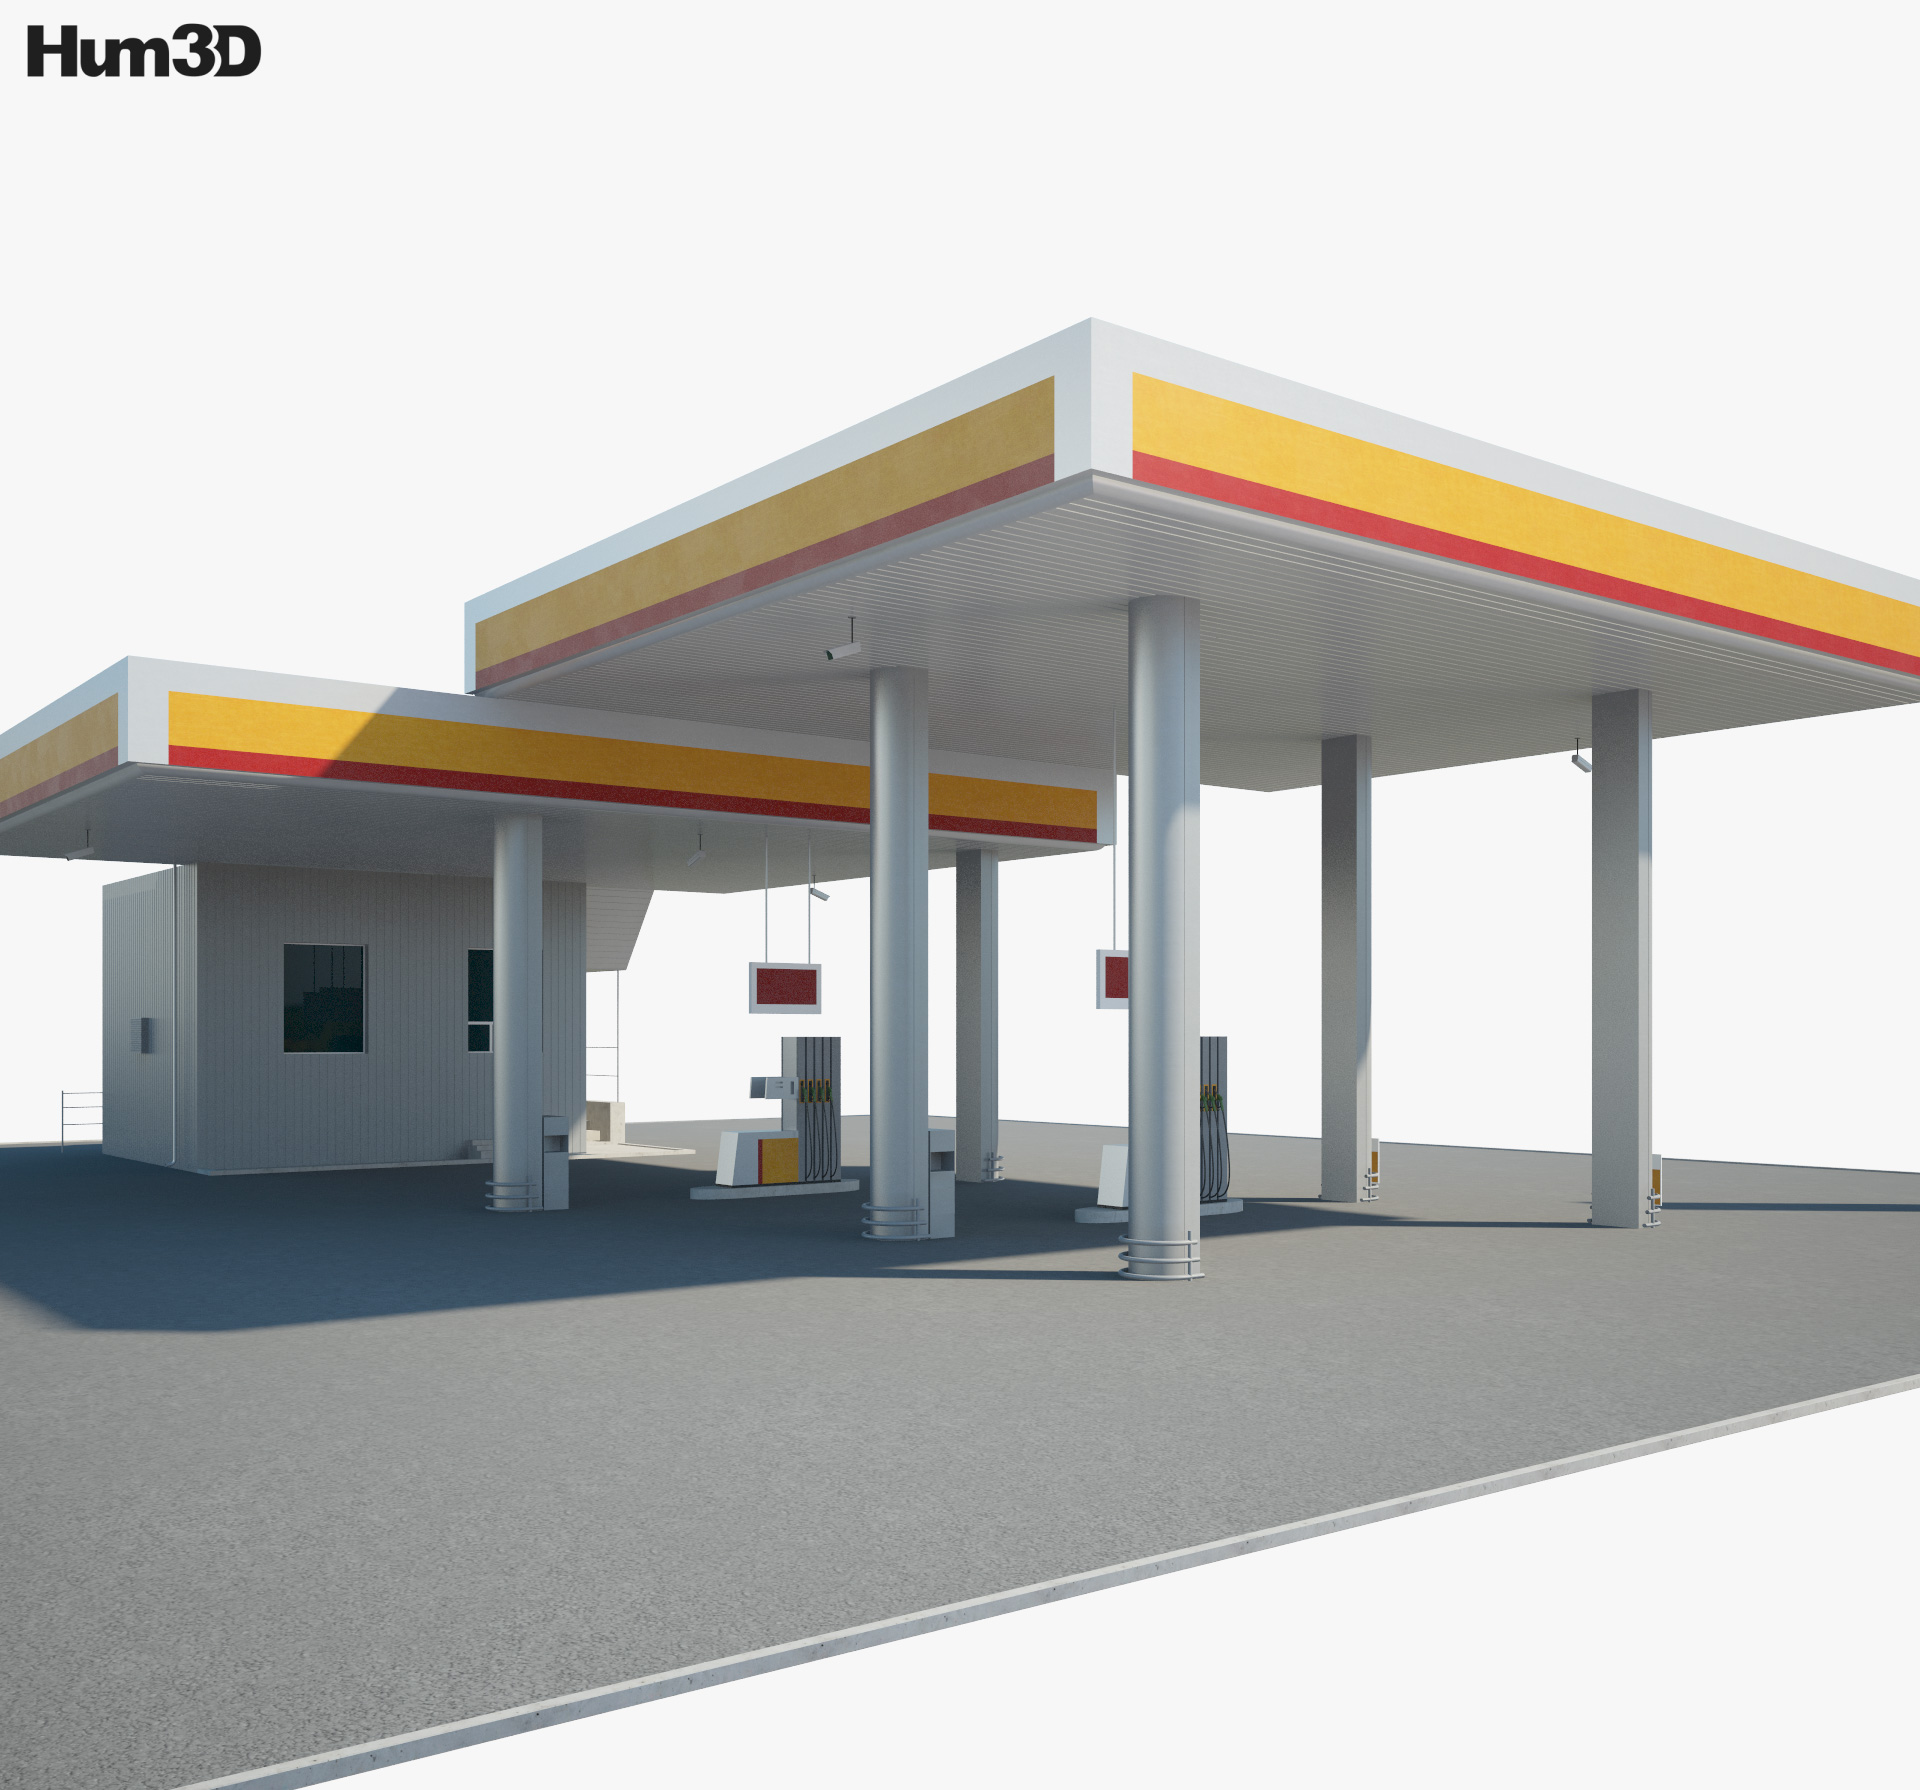 Shell gas station 001 3d model